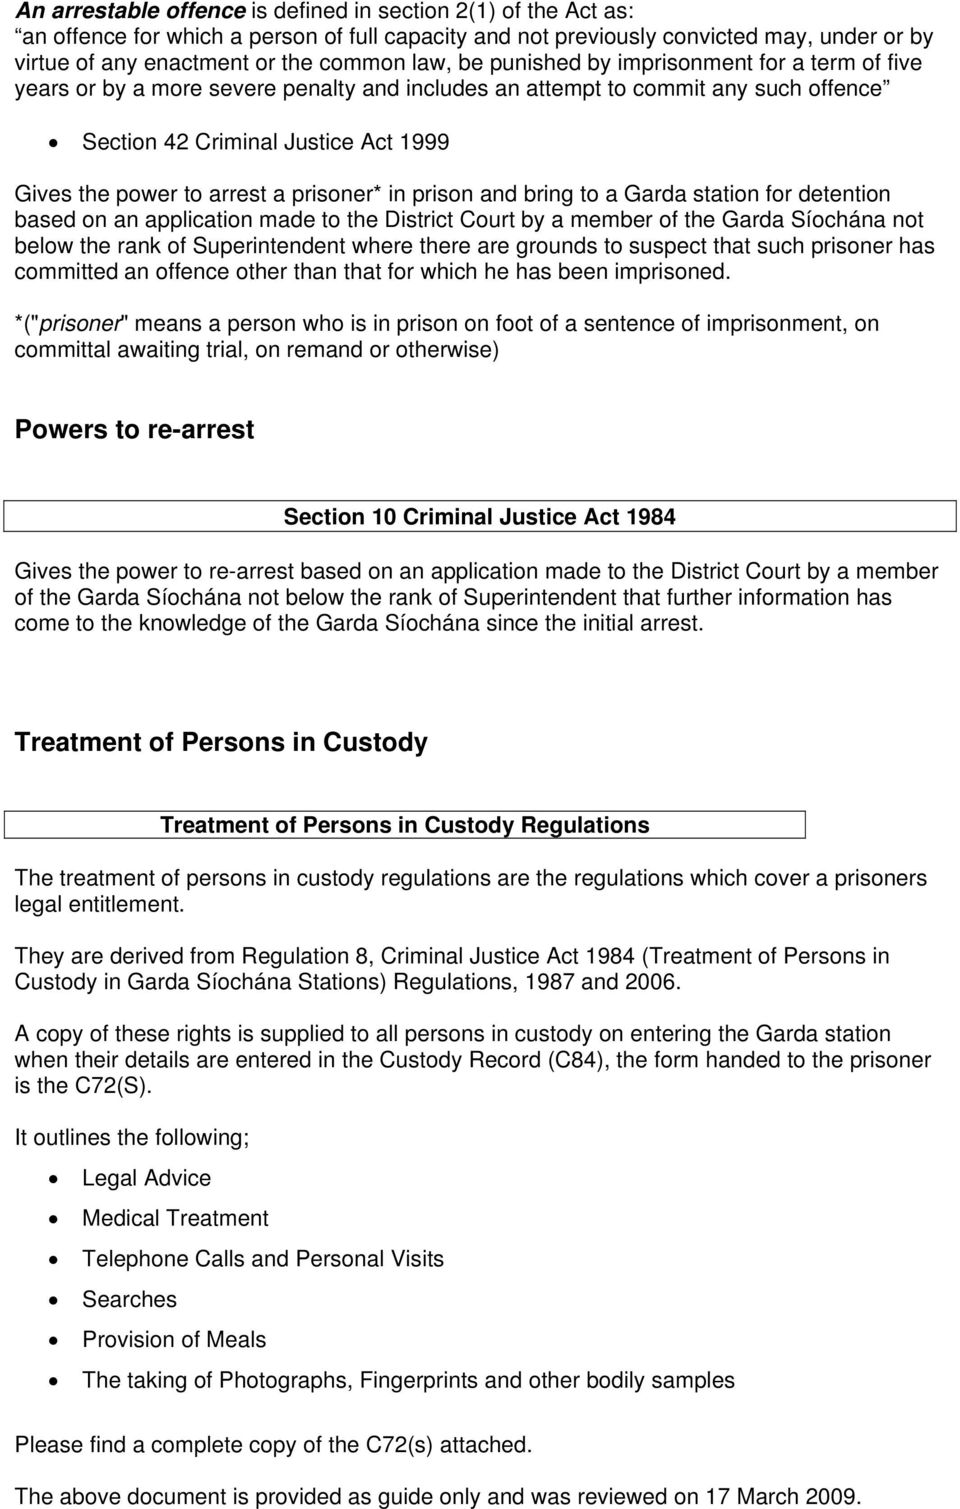 prisoner* in prison and bring to a Garda station for detention based on an application made to the District Court by a member of the Garda Síochána not below the rank of Superintendent where there